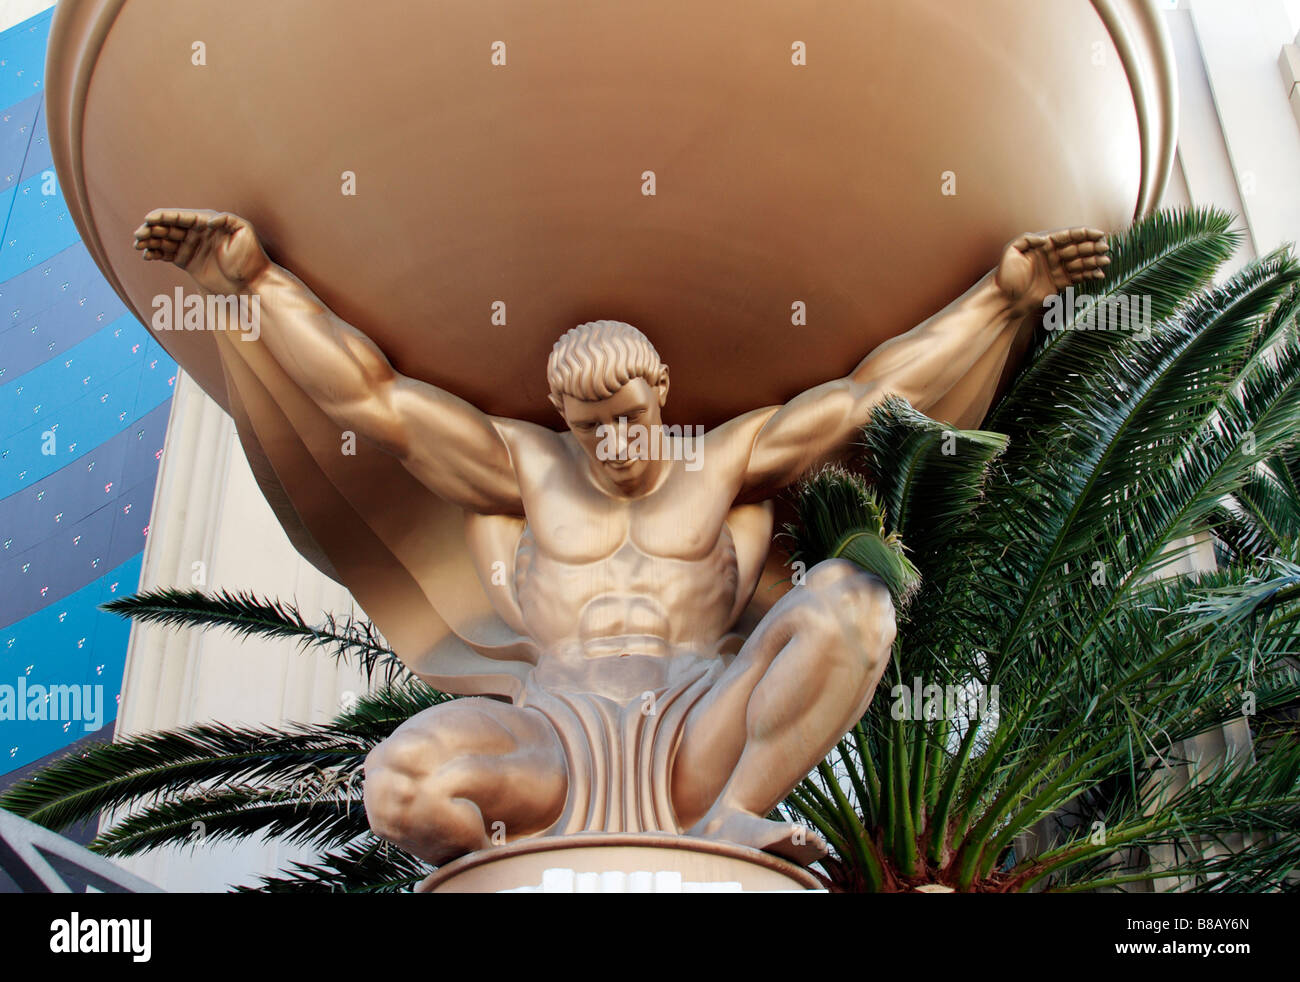 Golden Statue at MGM Grand Hotel in Las Vegas Nevada USA - Stock Image